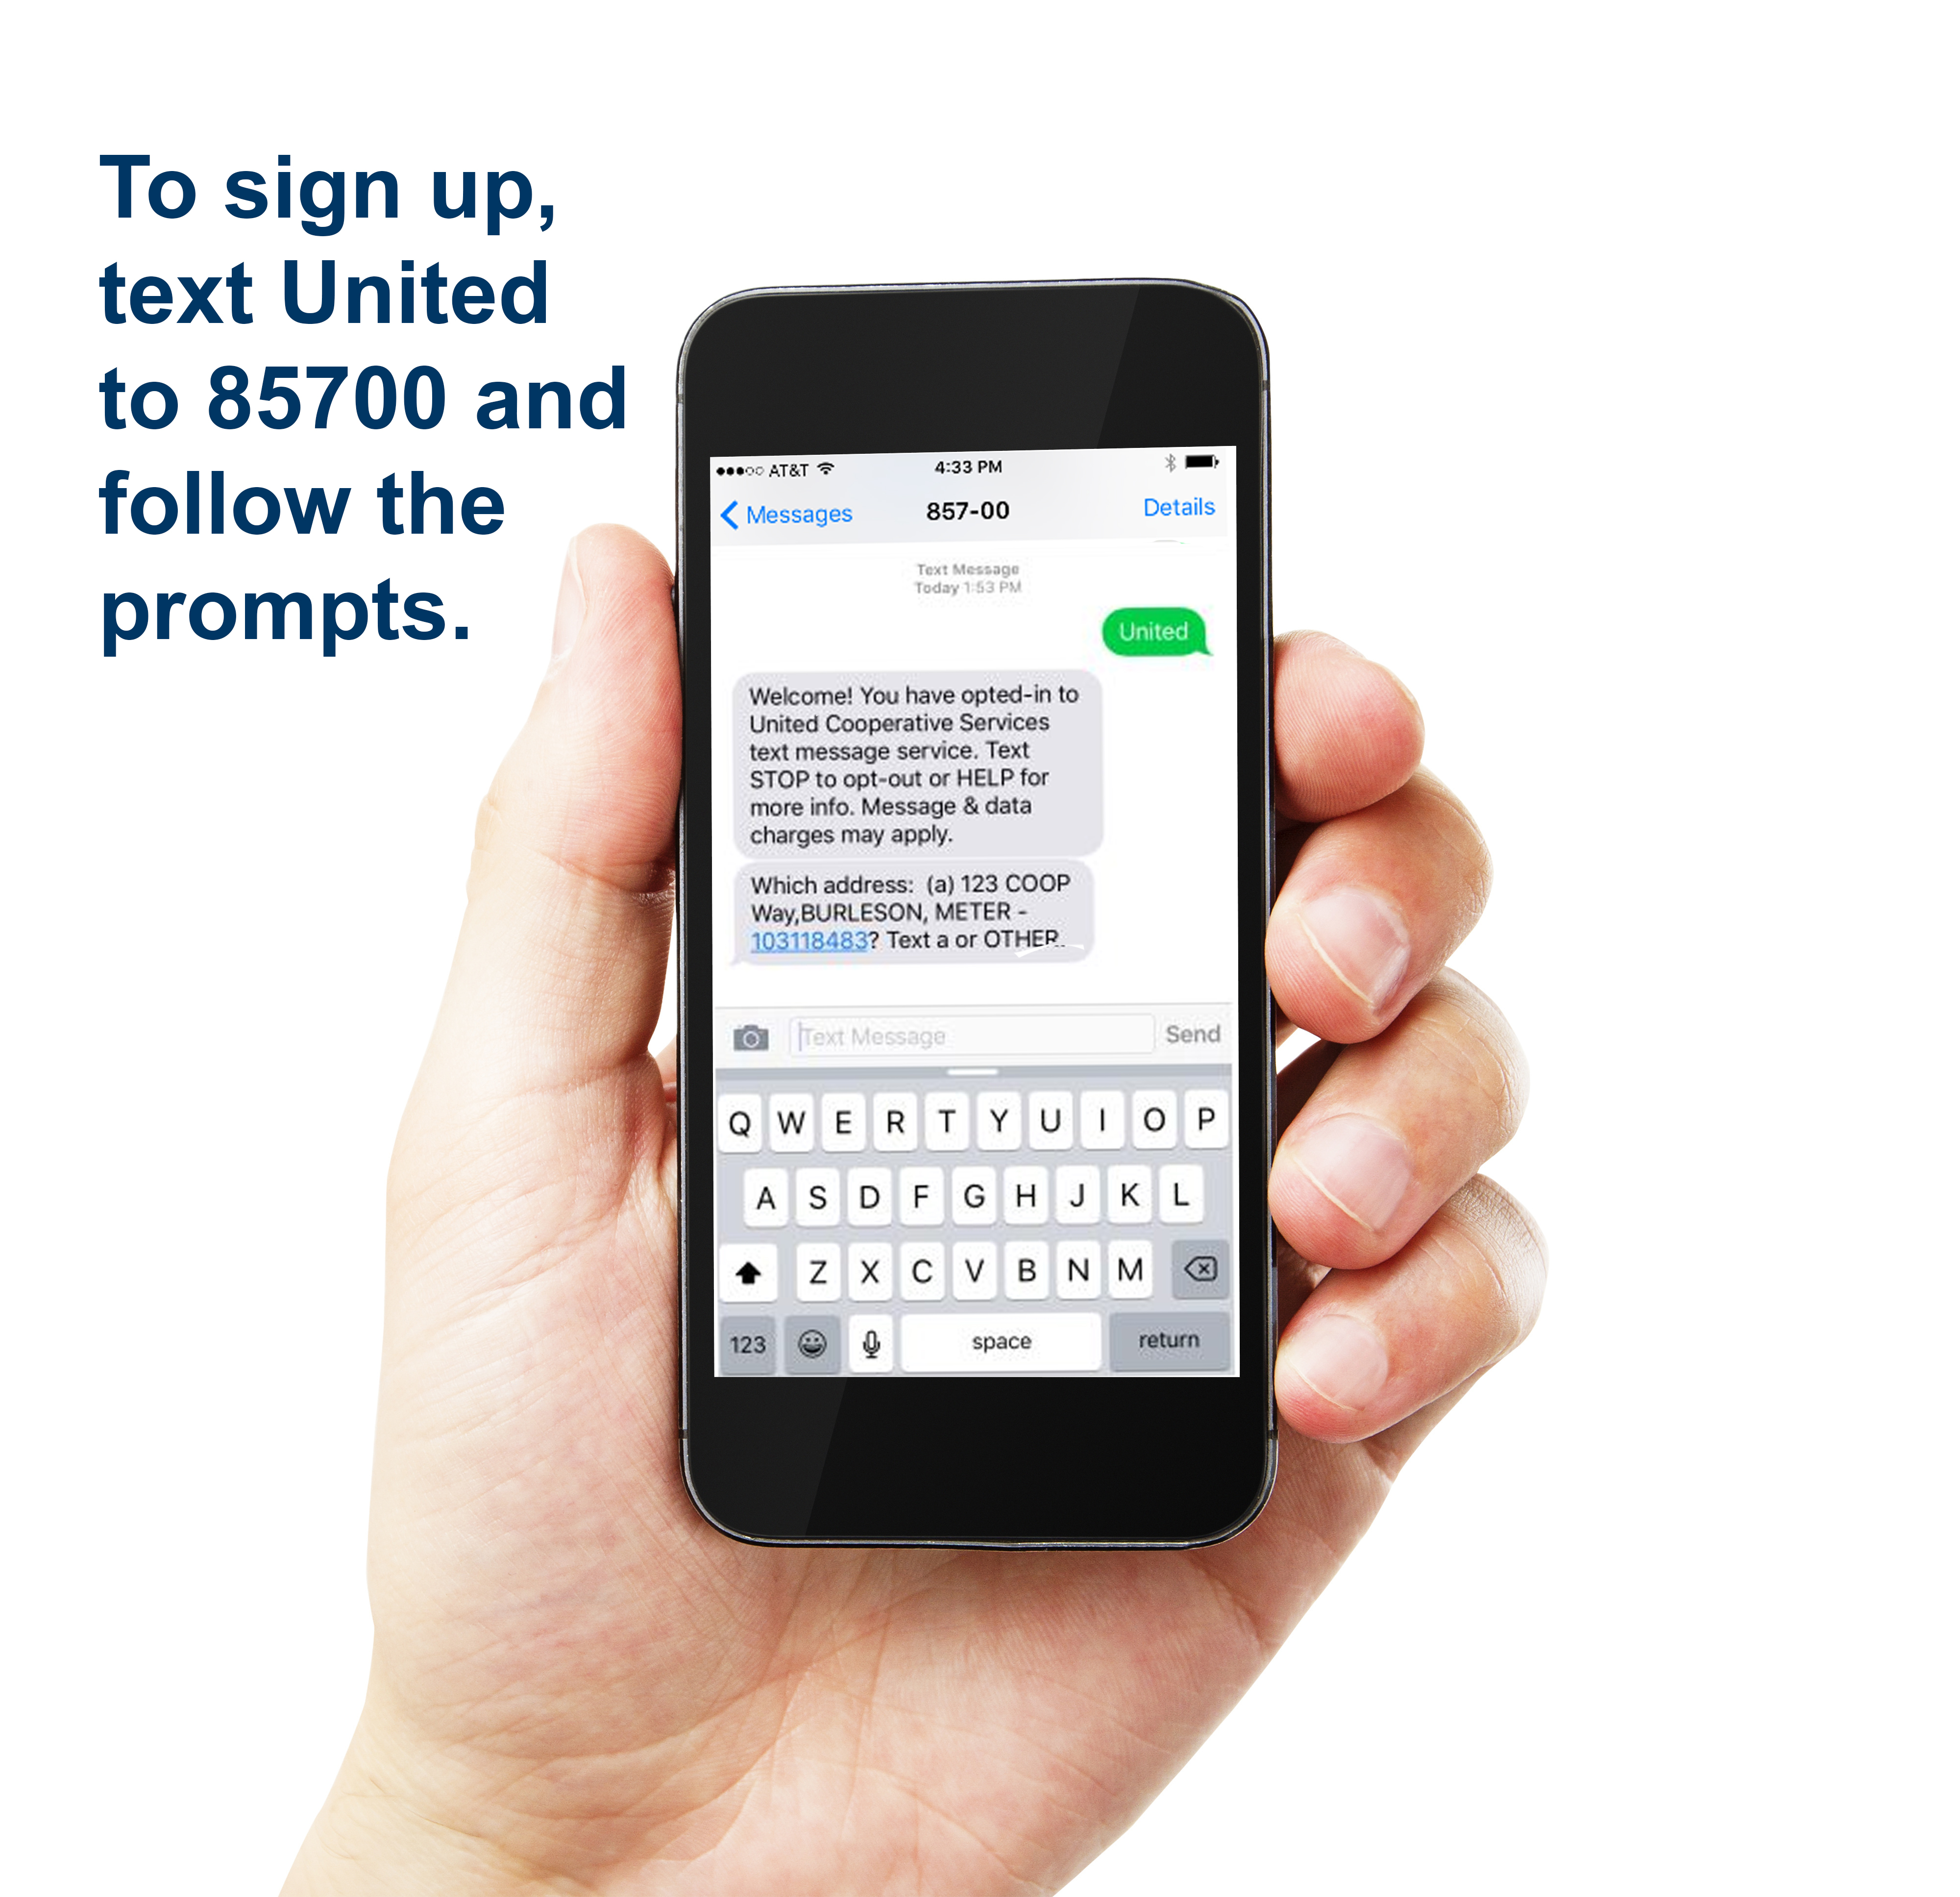 Cell phone to sigh up text United to 85700 and follow the prompts.